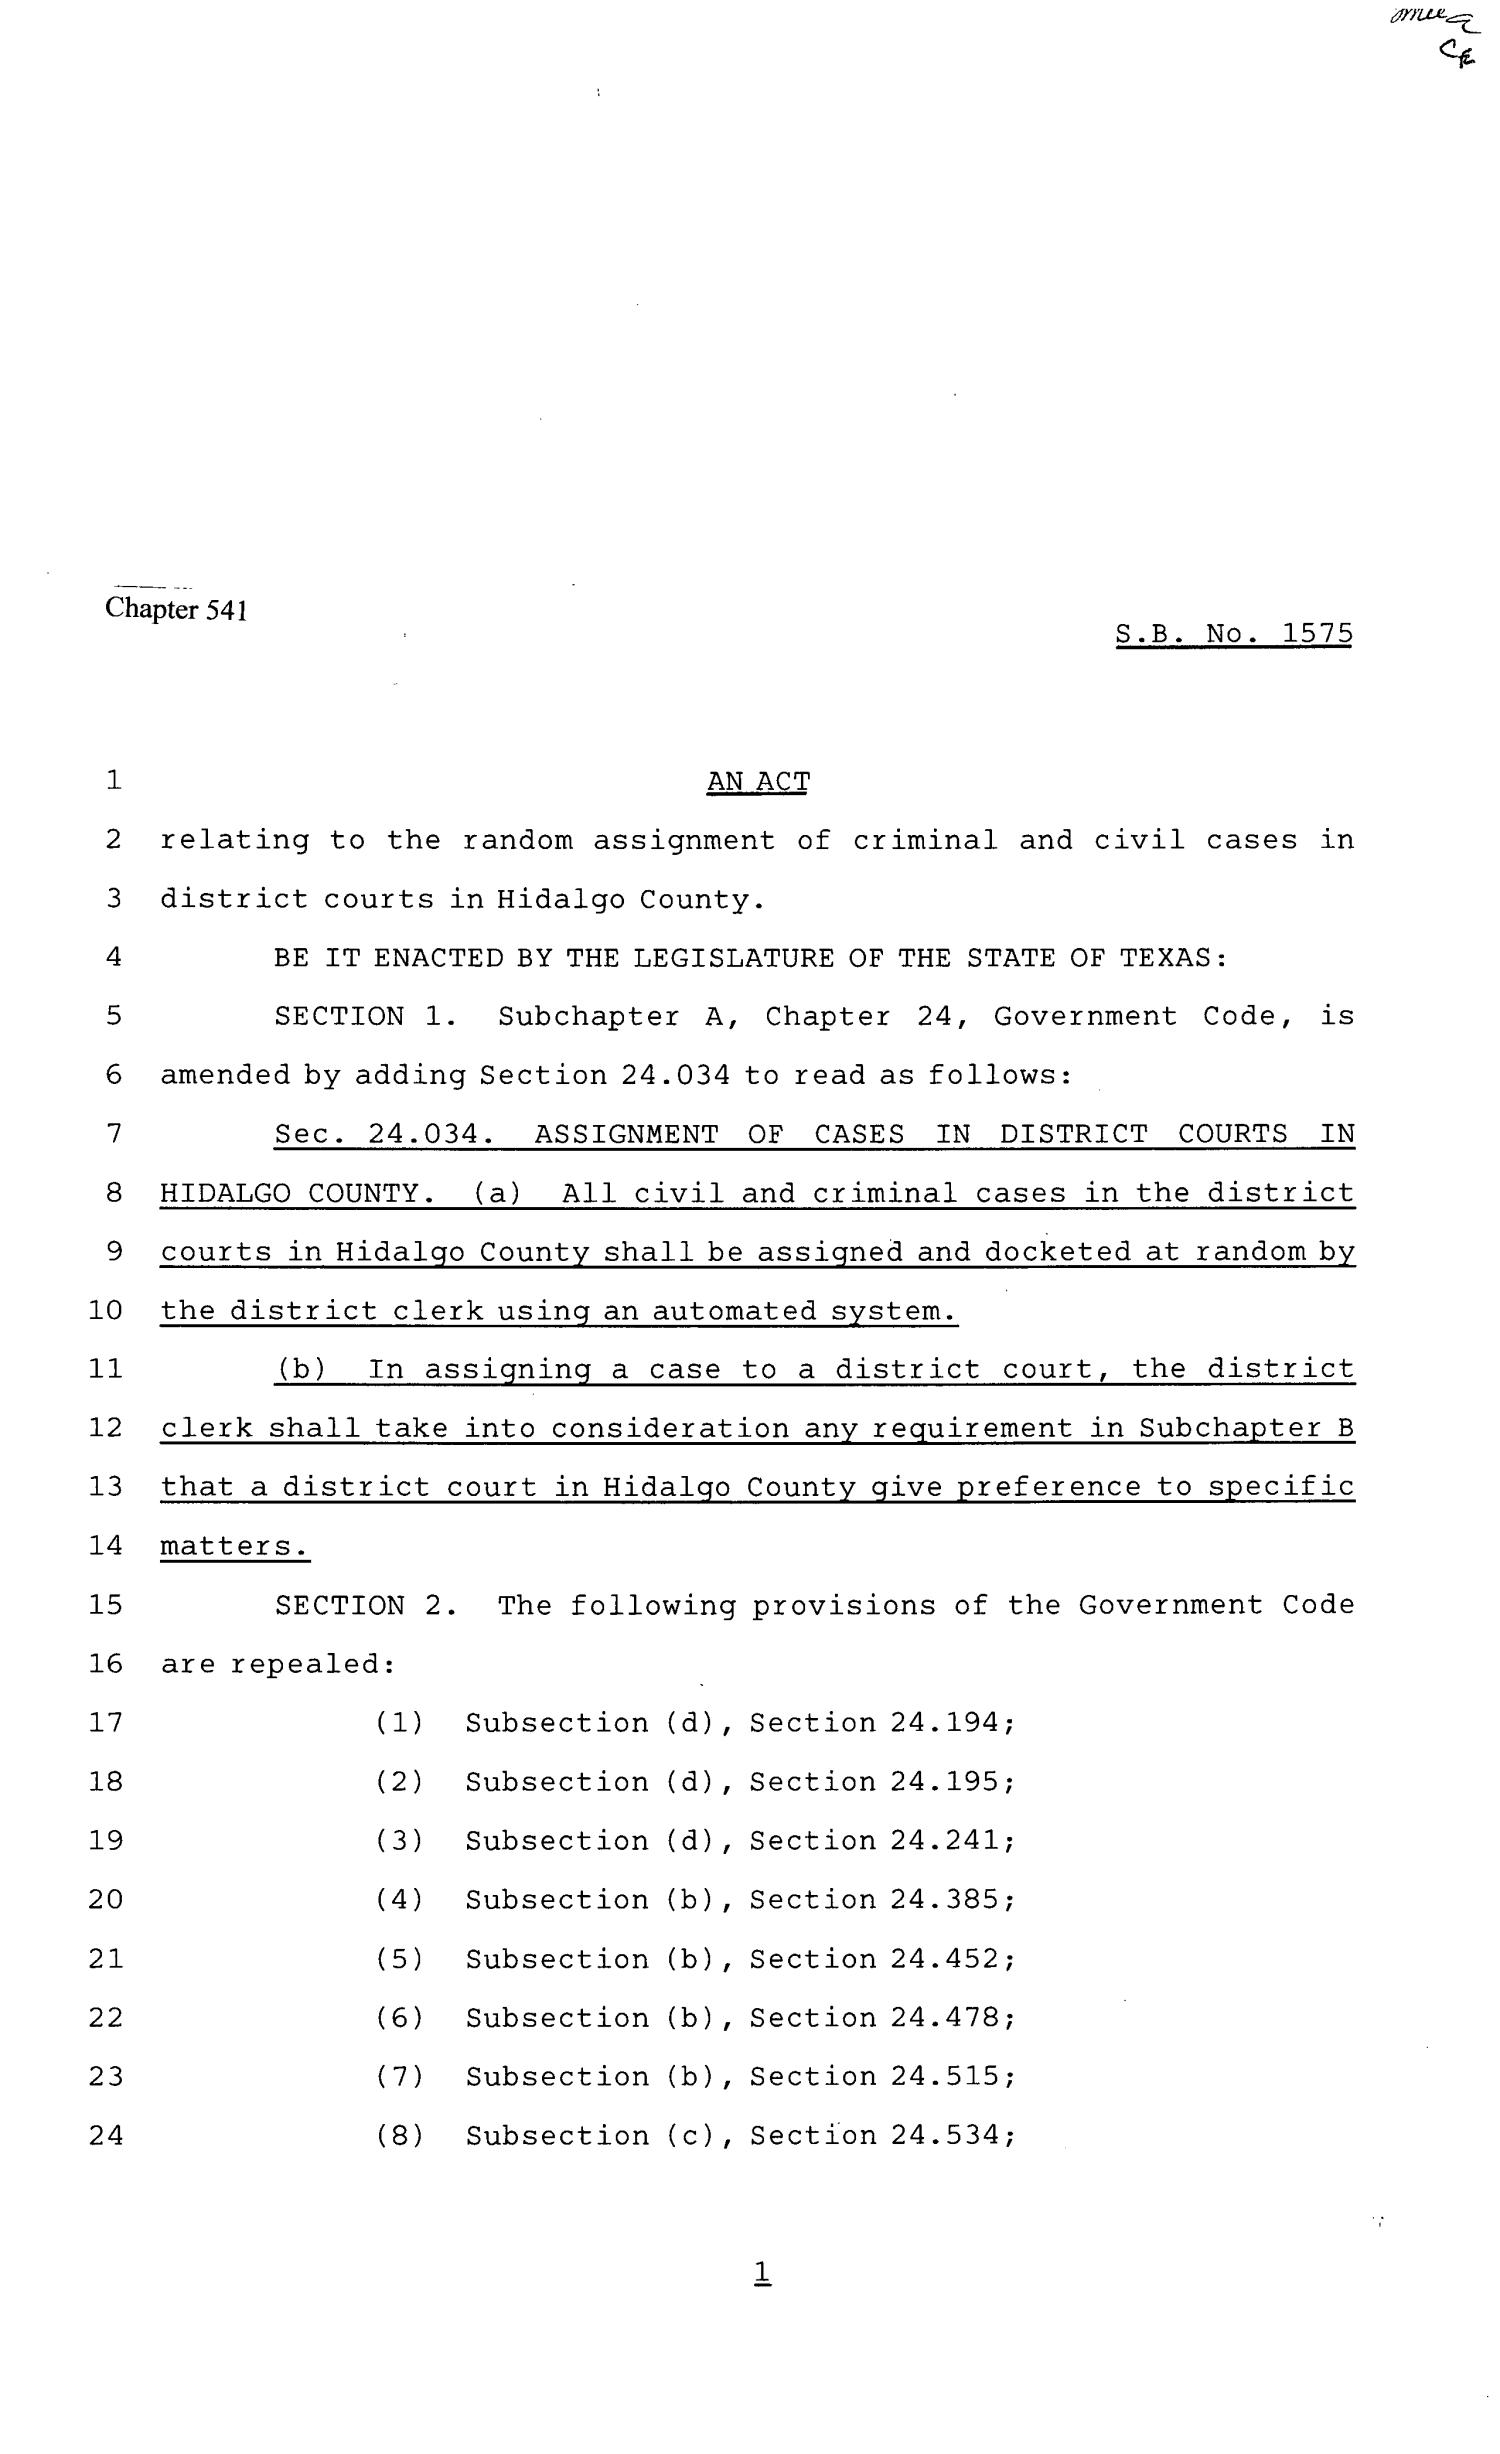 81st Texas Legislature, Senate Bill 1575, Chapter 541                                                                                                      [Sequence #]: 1 of 3